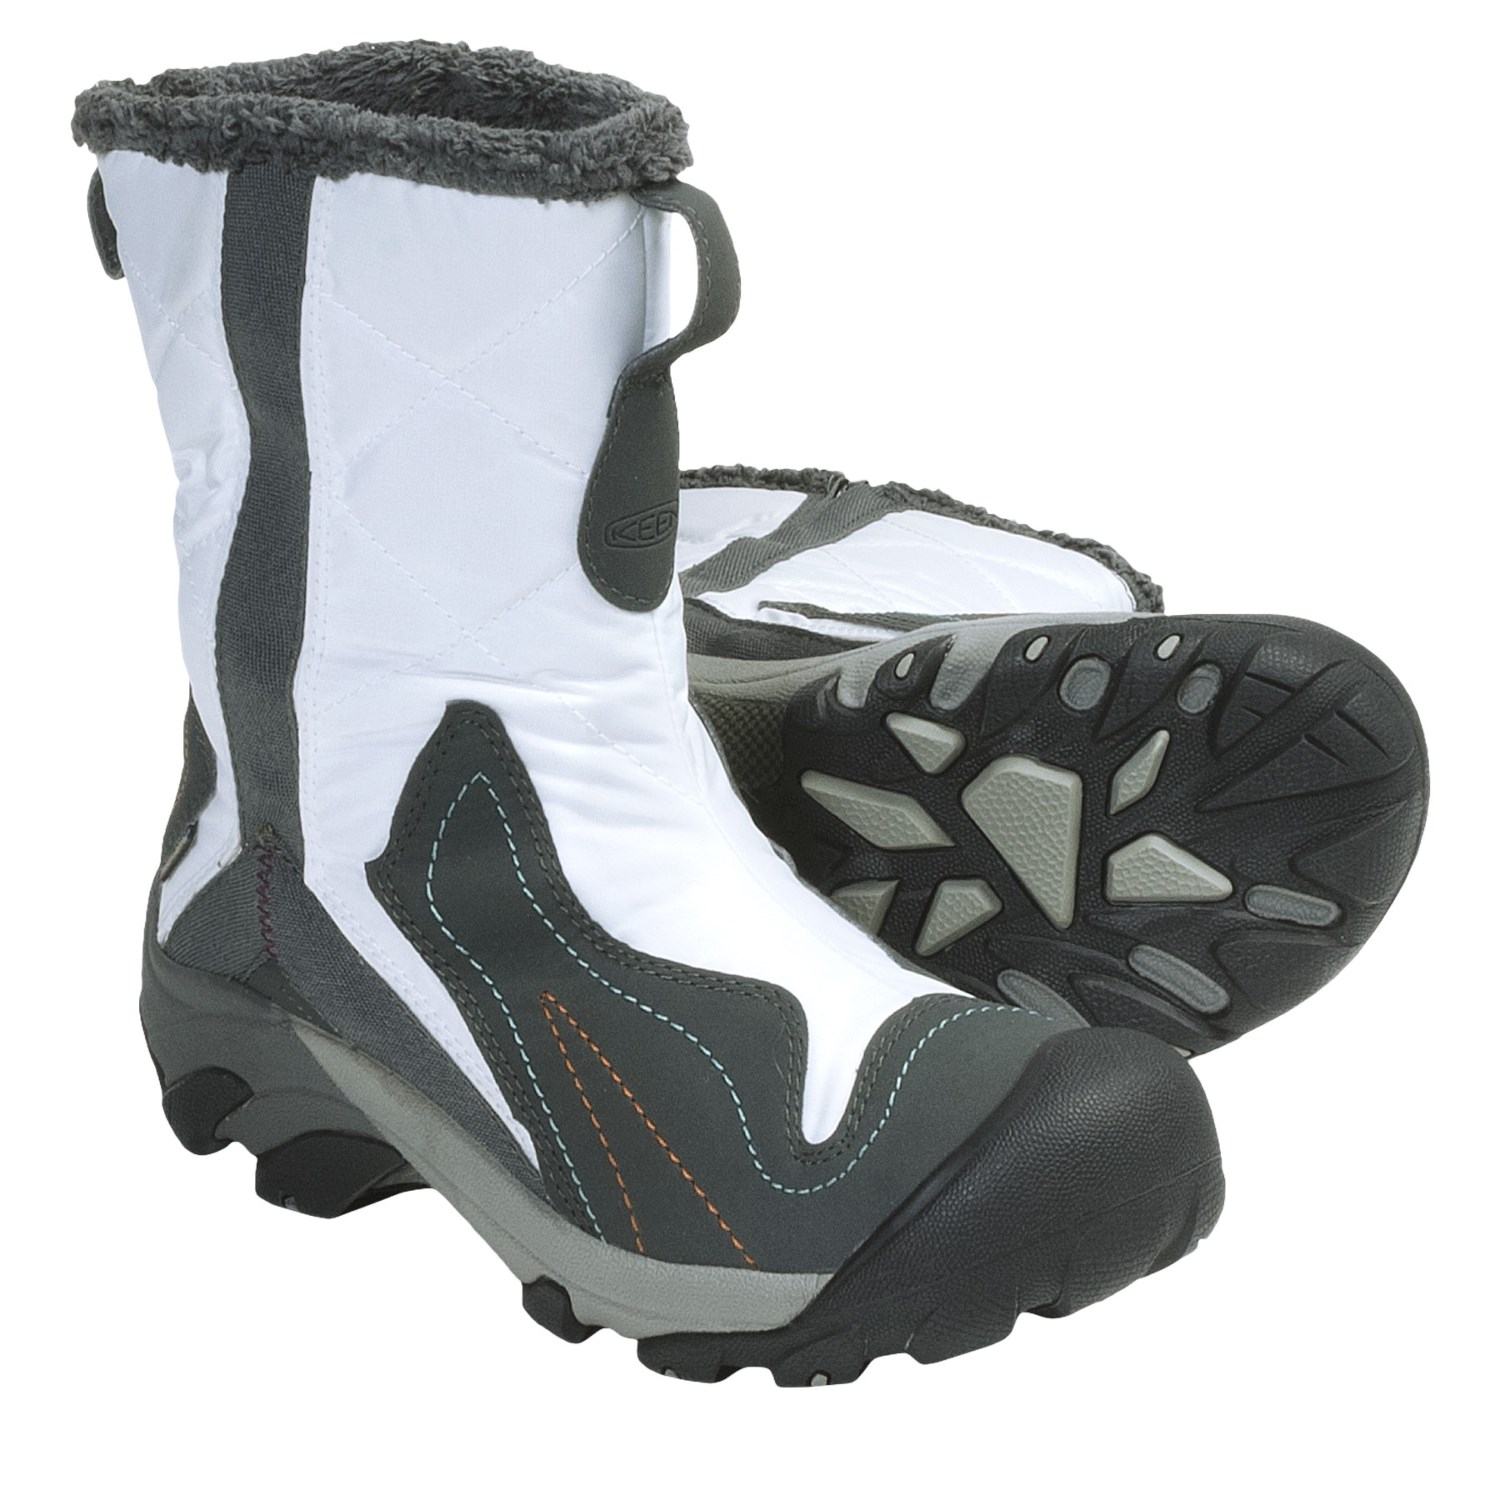 Amazing Keen Sandals Shoes And Boots  Buy Keen Footwear At Rubyshoesday